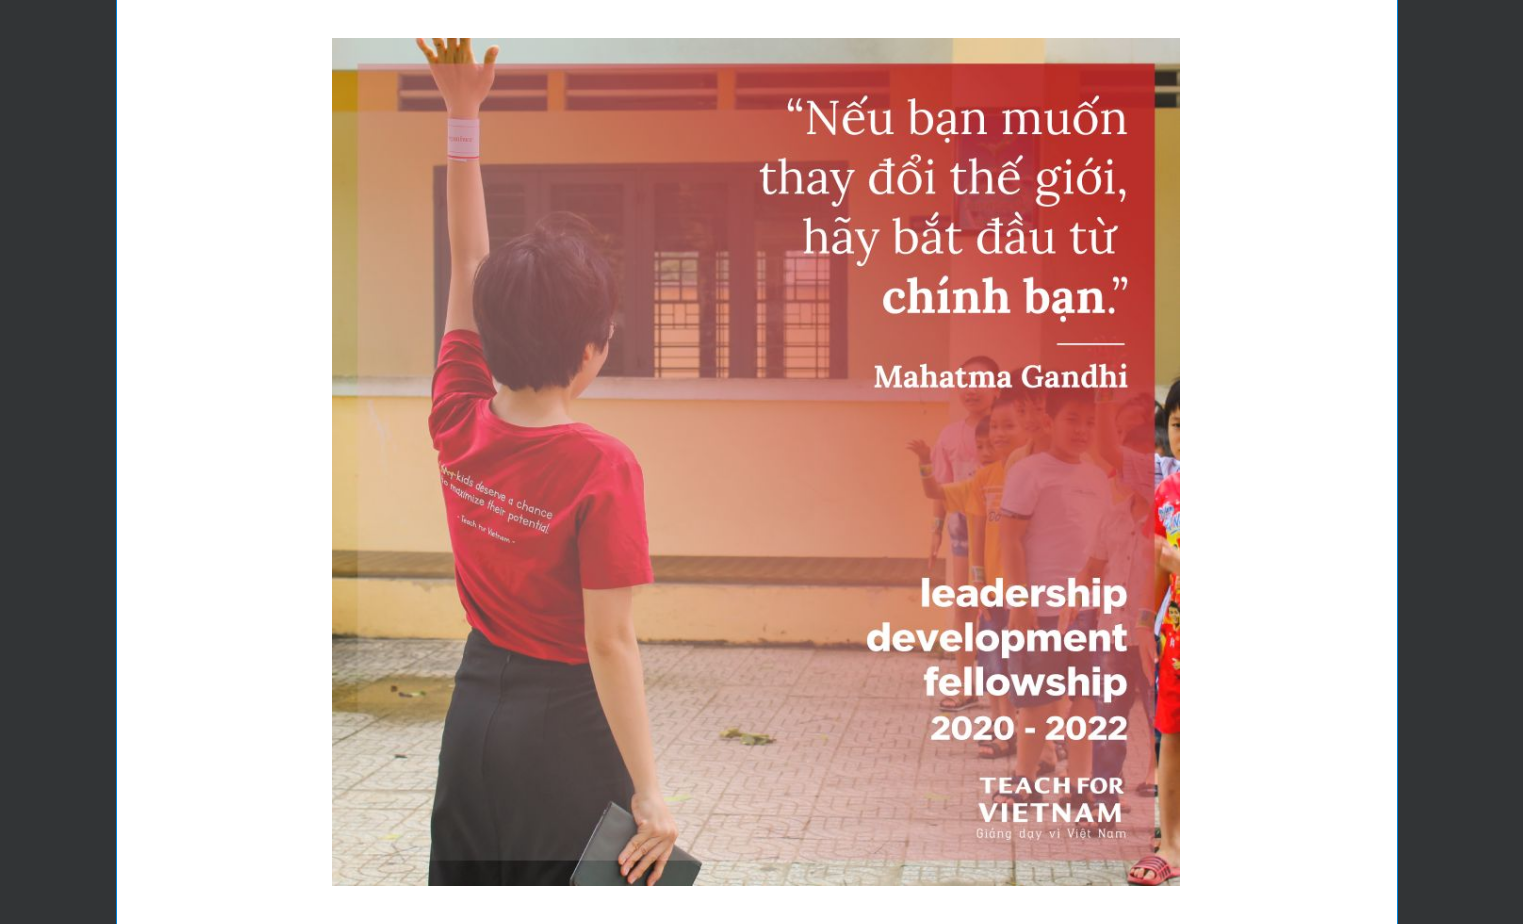 Teach for Vietnam: APPLY NOW for the Leadership Development Fellowship 2020-2022